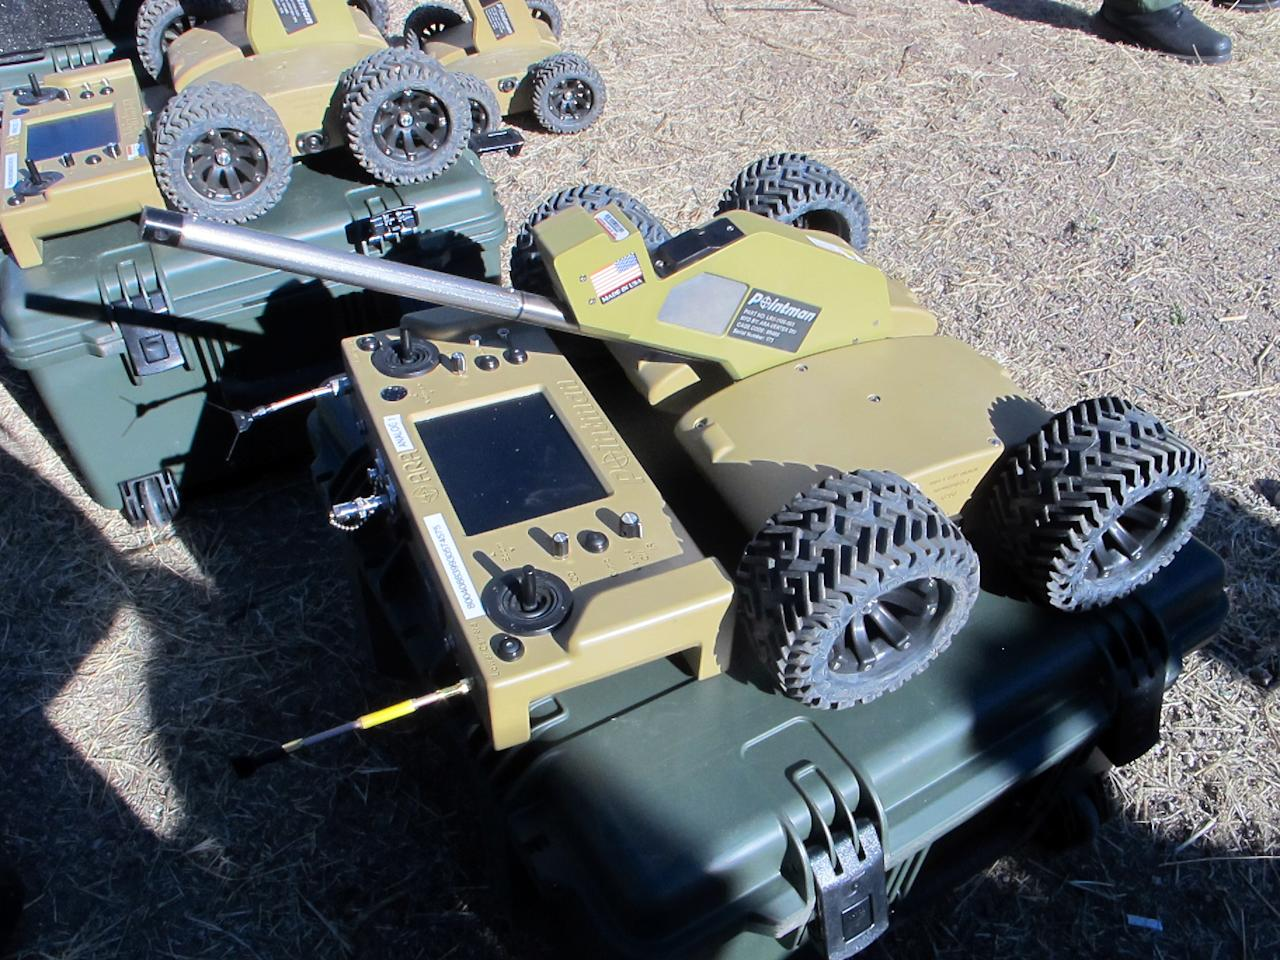 A wireless, camera-equipped robot is displayed by the U.S. Border Patrol during a briefing in Nogales, Ariz., Tuesday, Jan. 14, 2014. With more than 75 underground drug smuggling tunnels found along the border since 2008, mostly in California and Arizona, the U.S. Border Patrol is utilizing the robots to assist in their search. (AP Photo/Brian Skoloff)